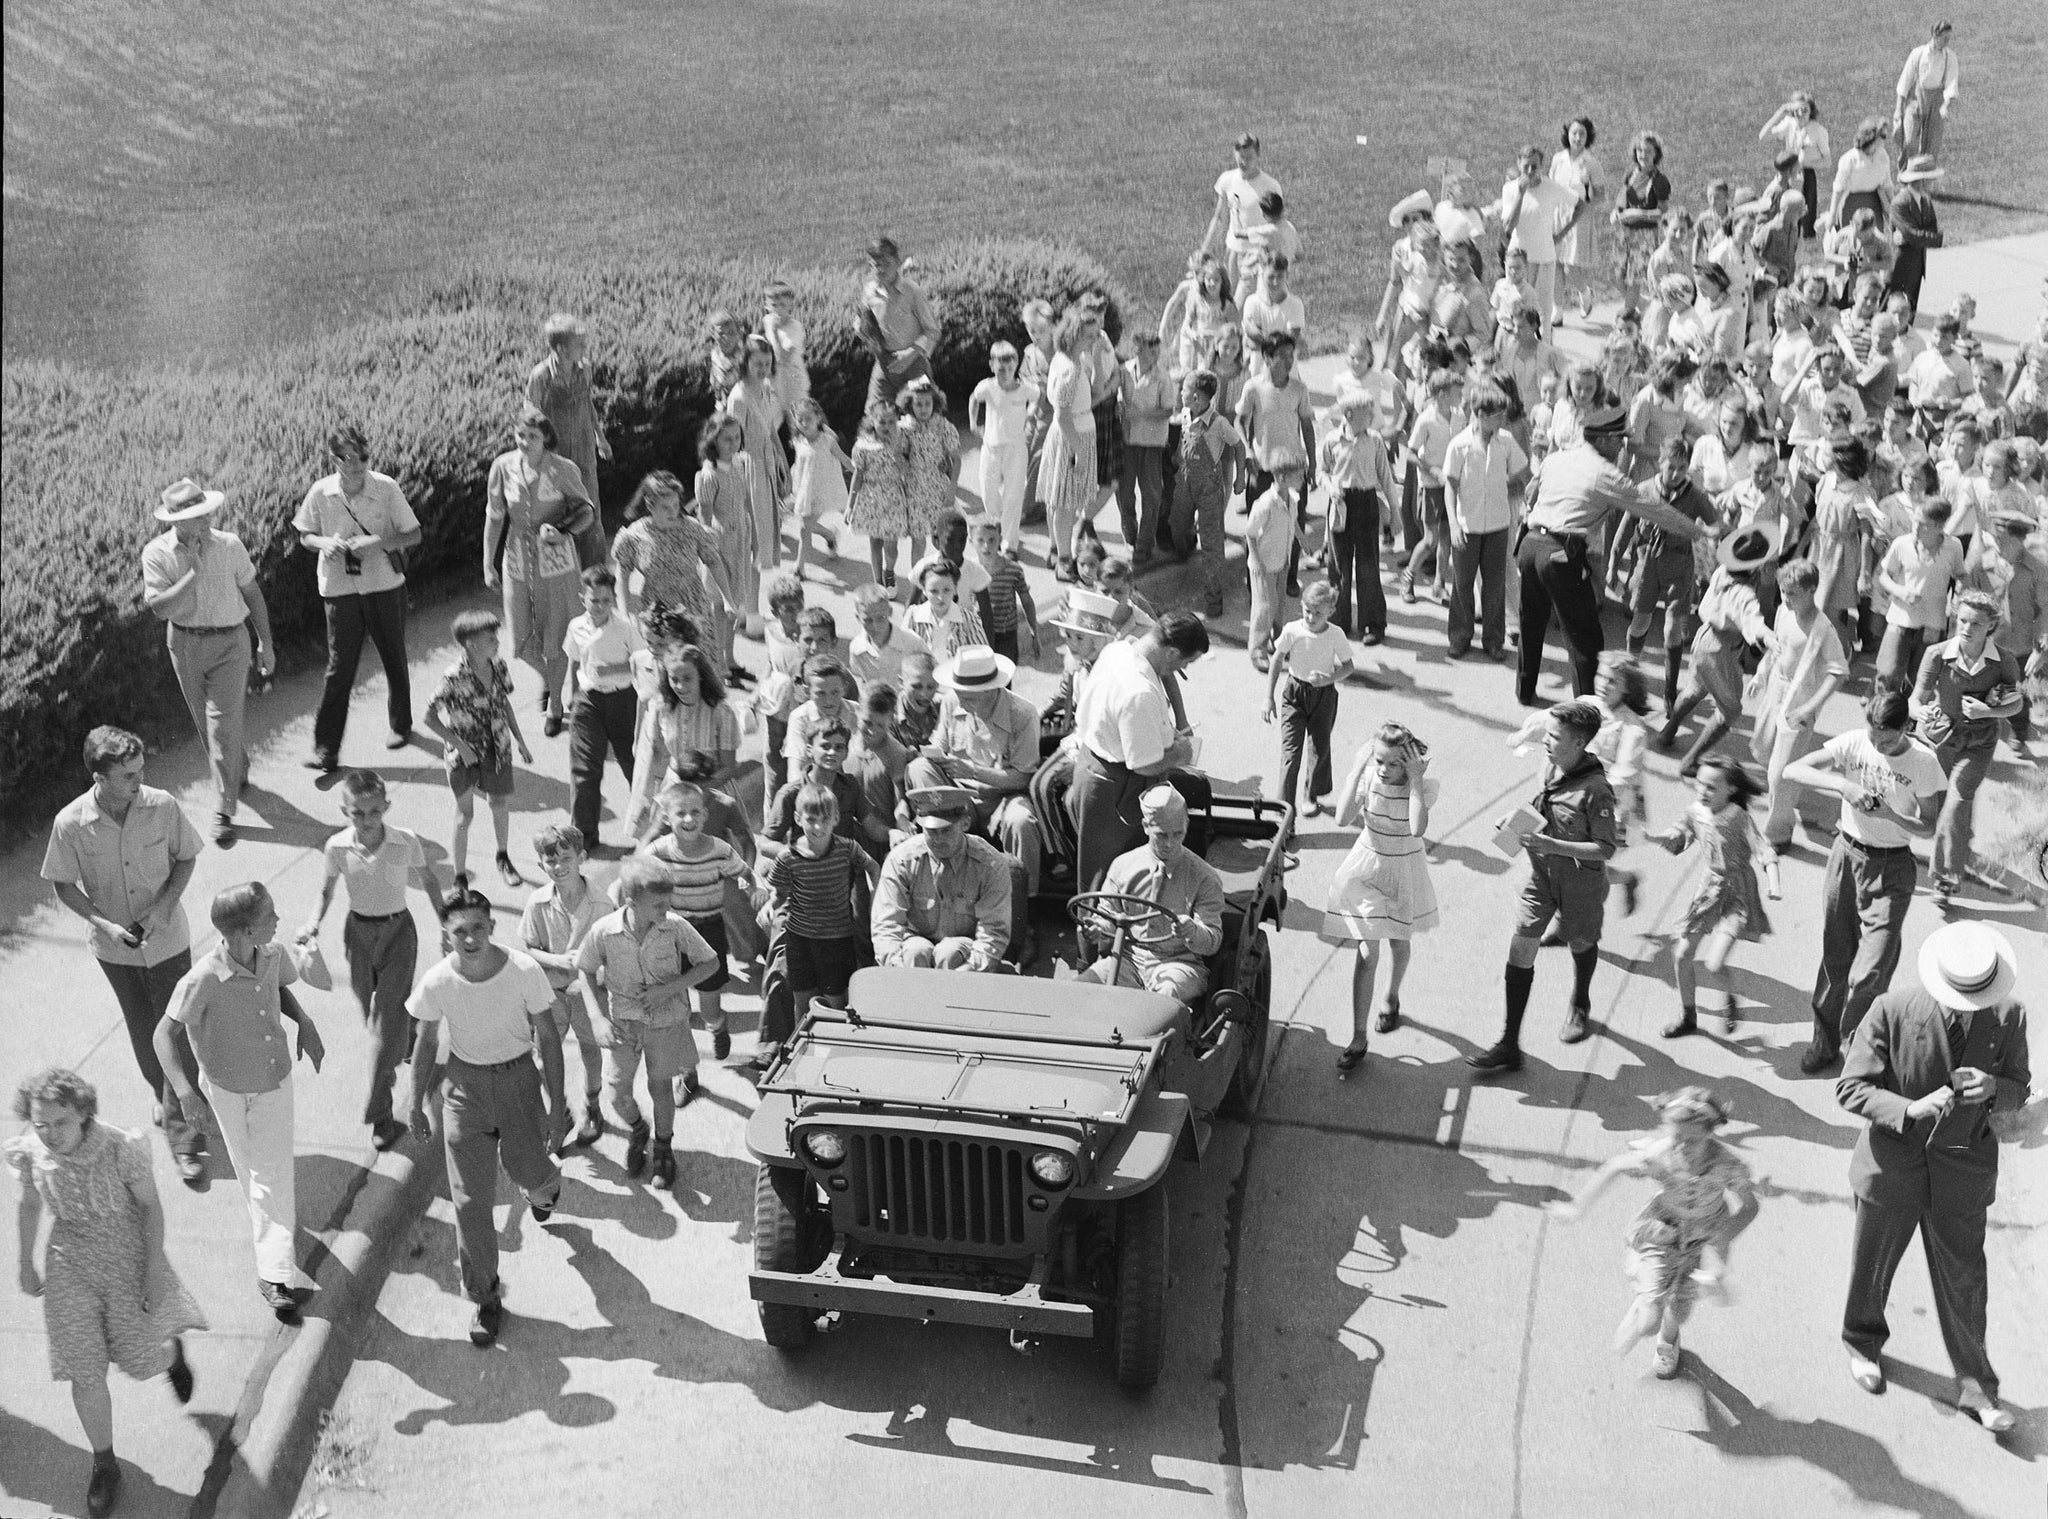 Bud Abbott and Lou Costello signing autographs for children from a jeep in front of the State Capitol Building, July 31, 1942. -- Courtesy Nebraska State Historical Society / #RG2183.PH001942-000731-2